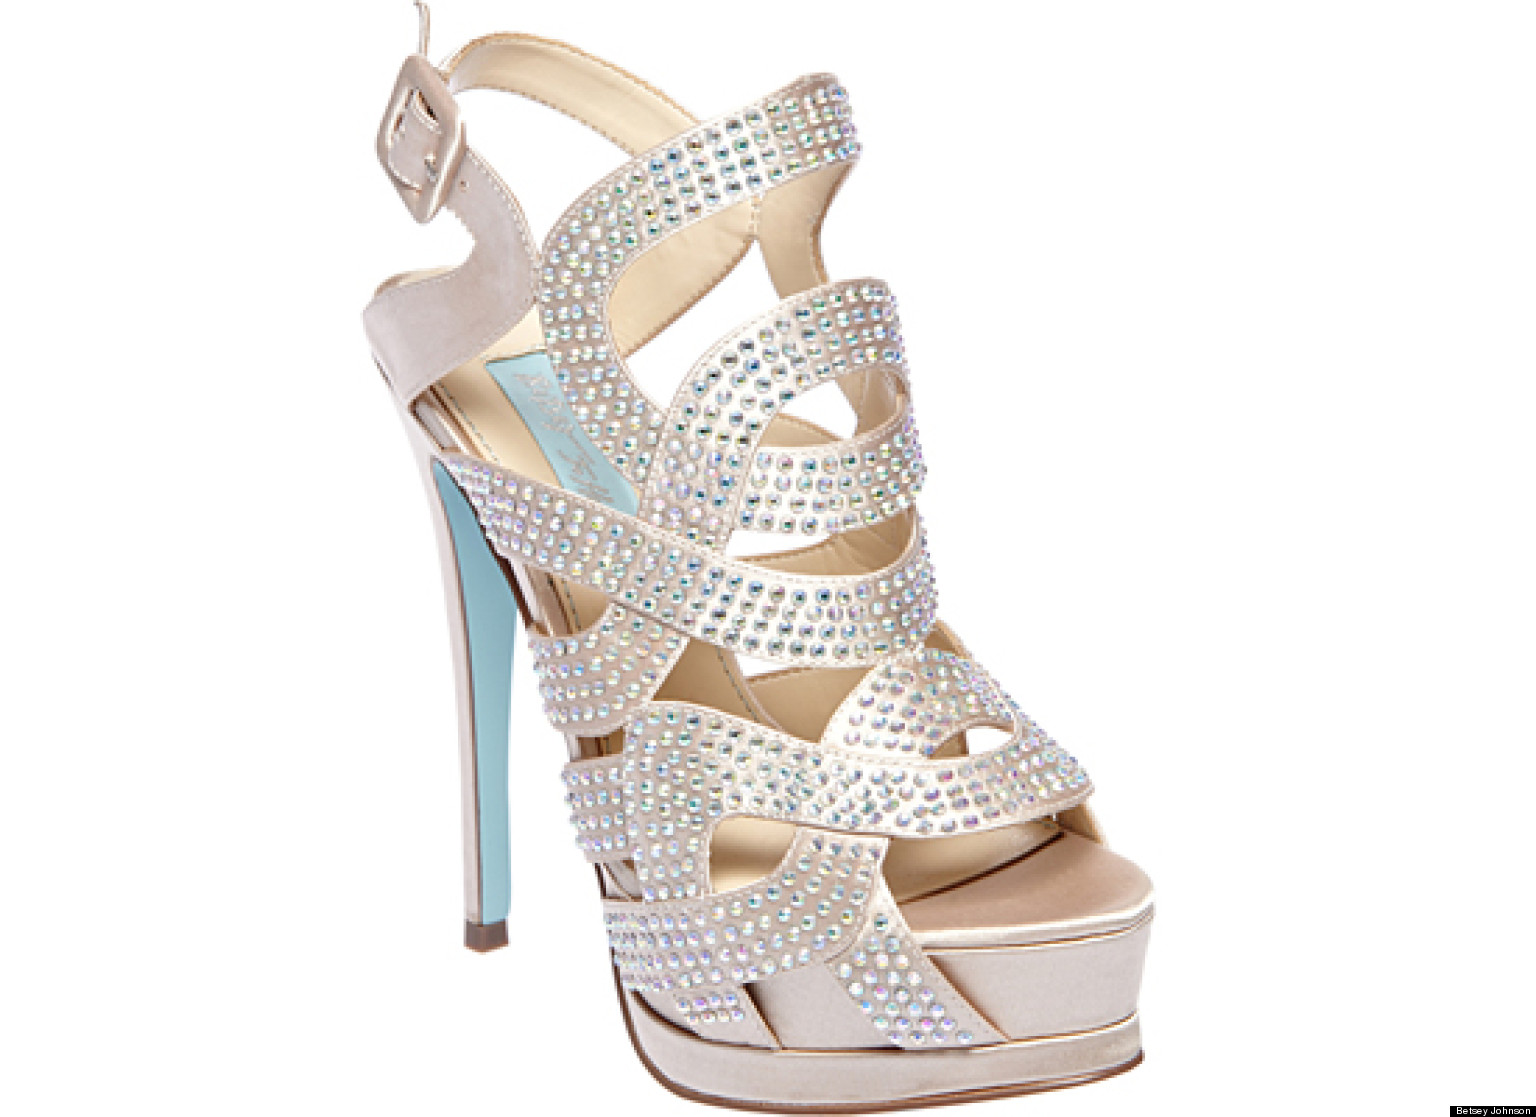 Betsey Johnson S Bridal Shoe Collection To Debut On Zappos Com Photos Huffpost